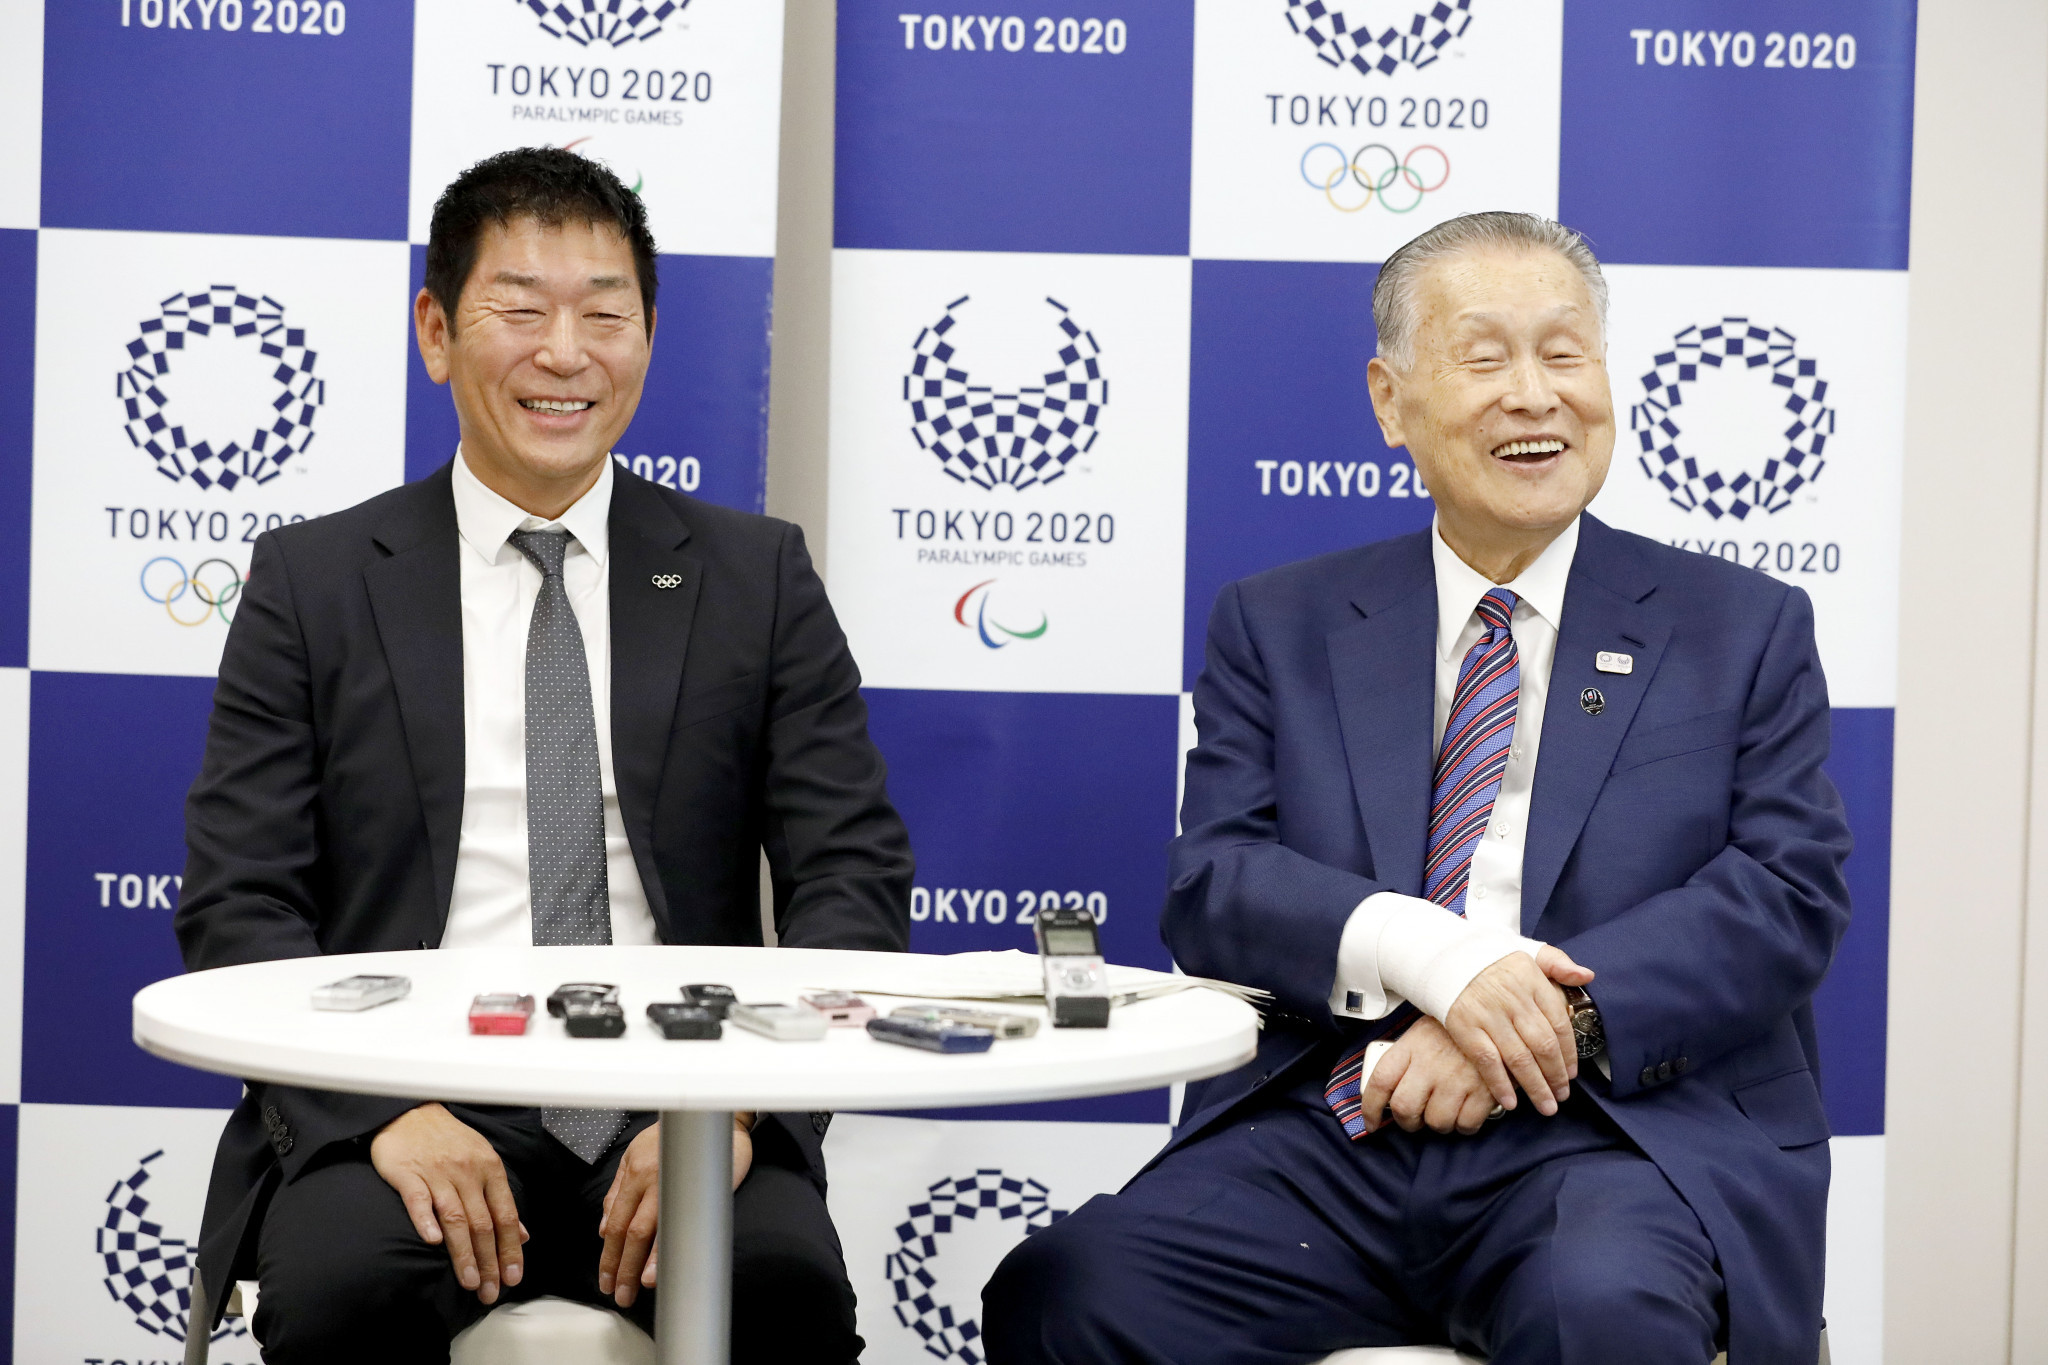 FIG President Watanabe to become Tokyo 2020 Executive Board member